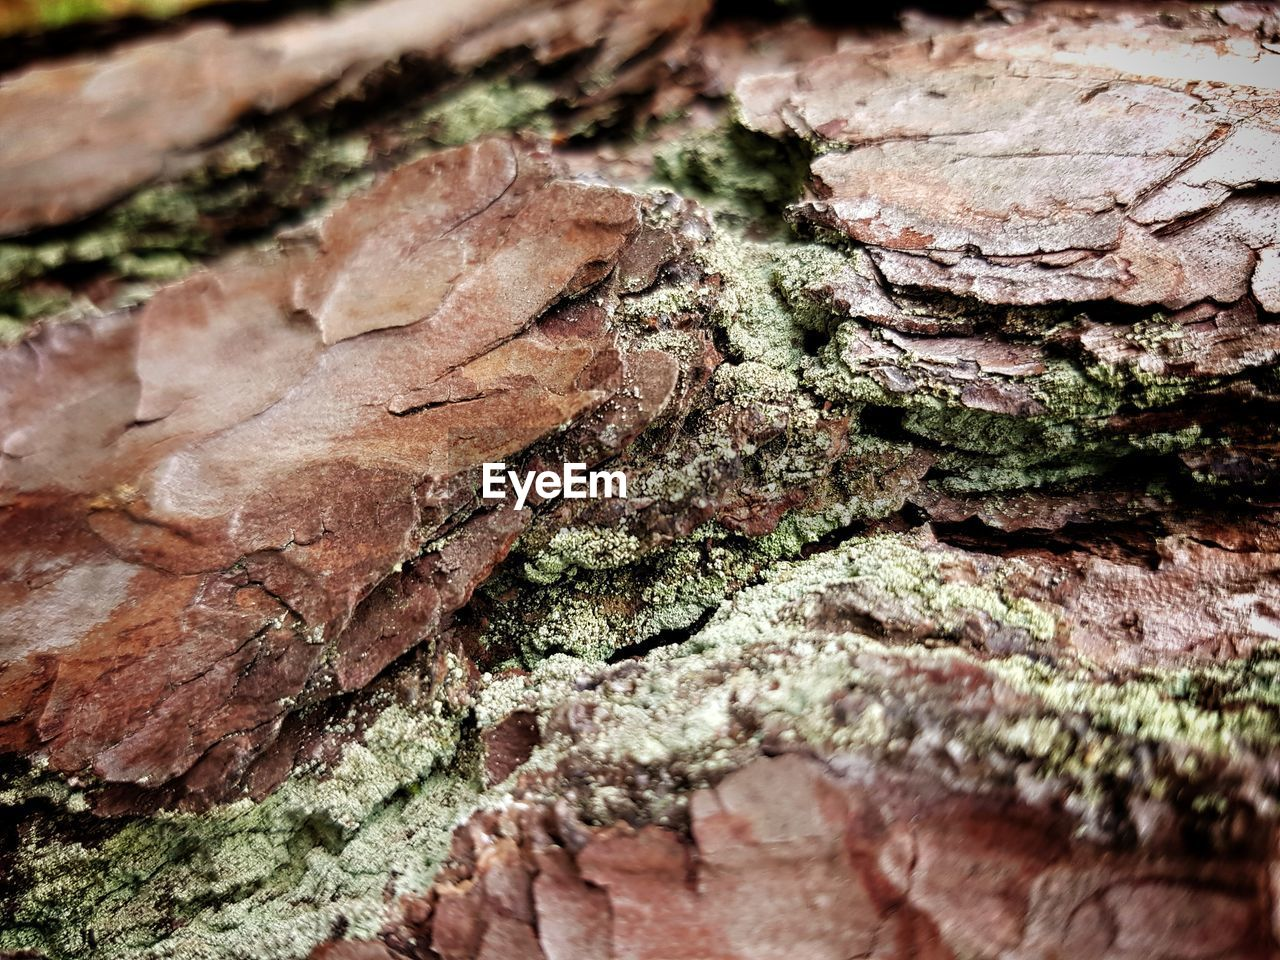 close-up, selective focus, textured, rough, no people, tree trunk, trunk, backgrounds, tree, full frame, plant, day, moss, outdoors, wood - material, nature, food, focus on foreground, bark, growth, lichen